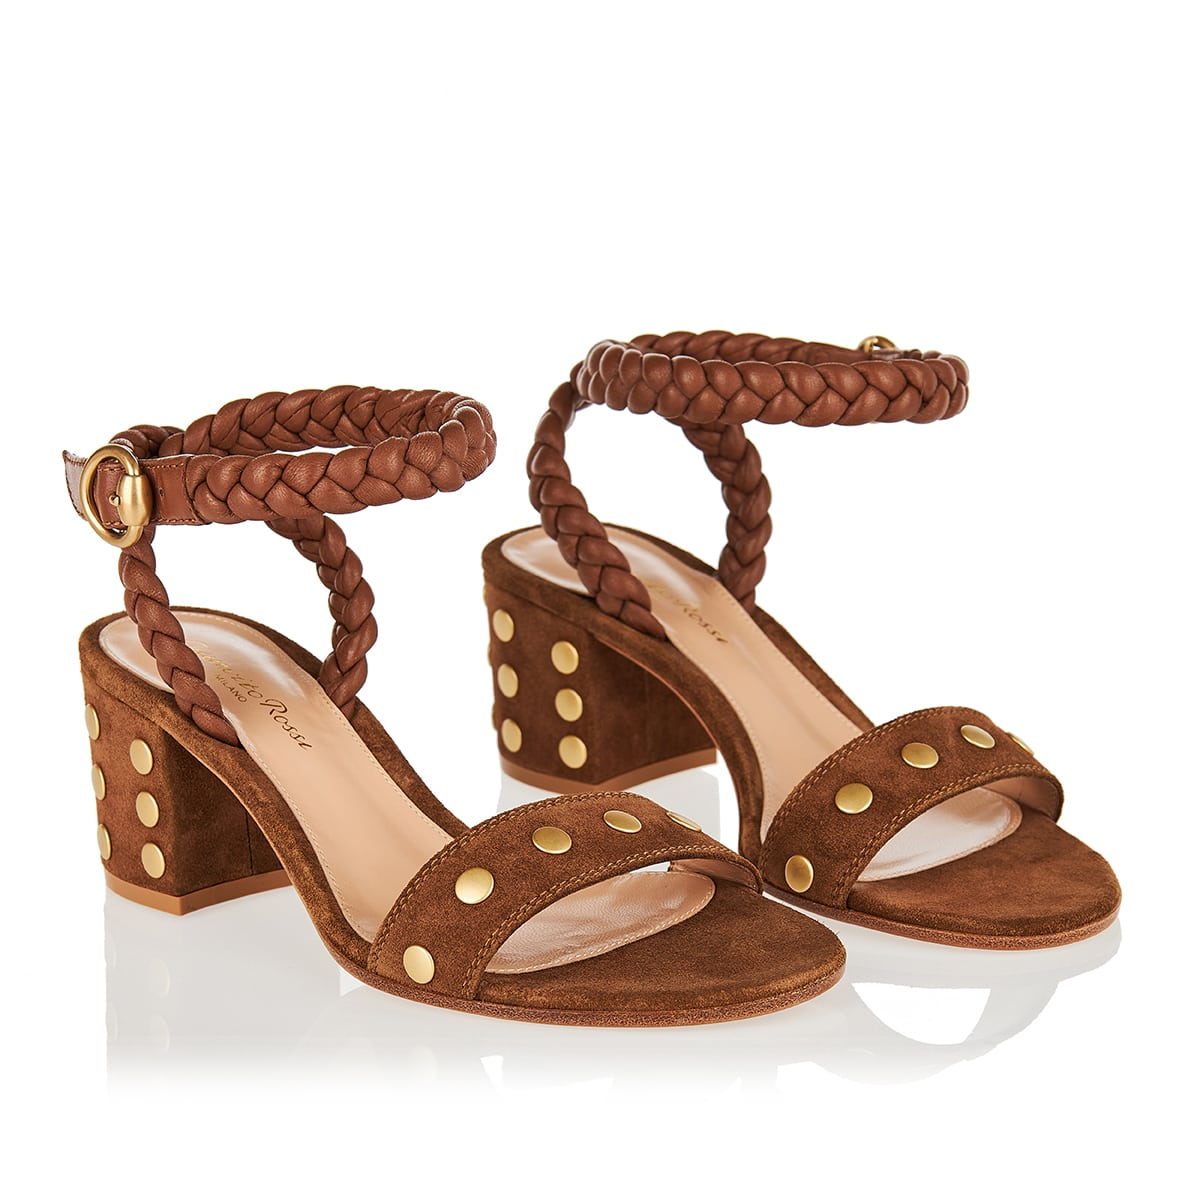 Studded suede and leather sandals